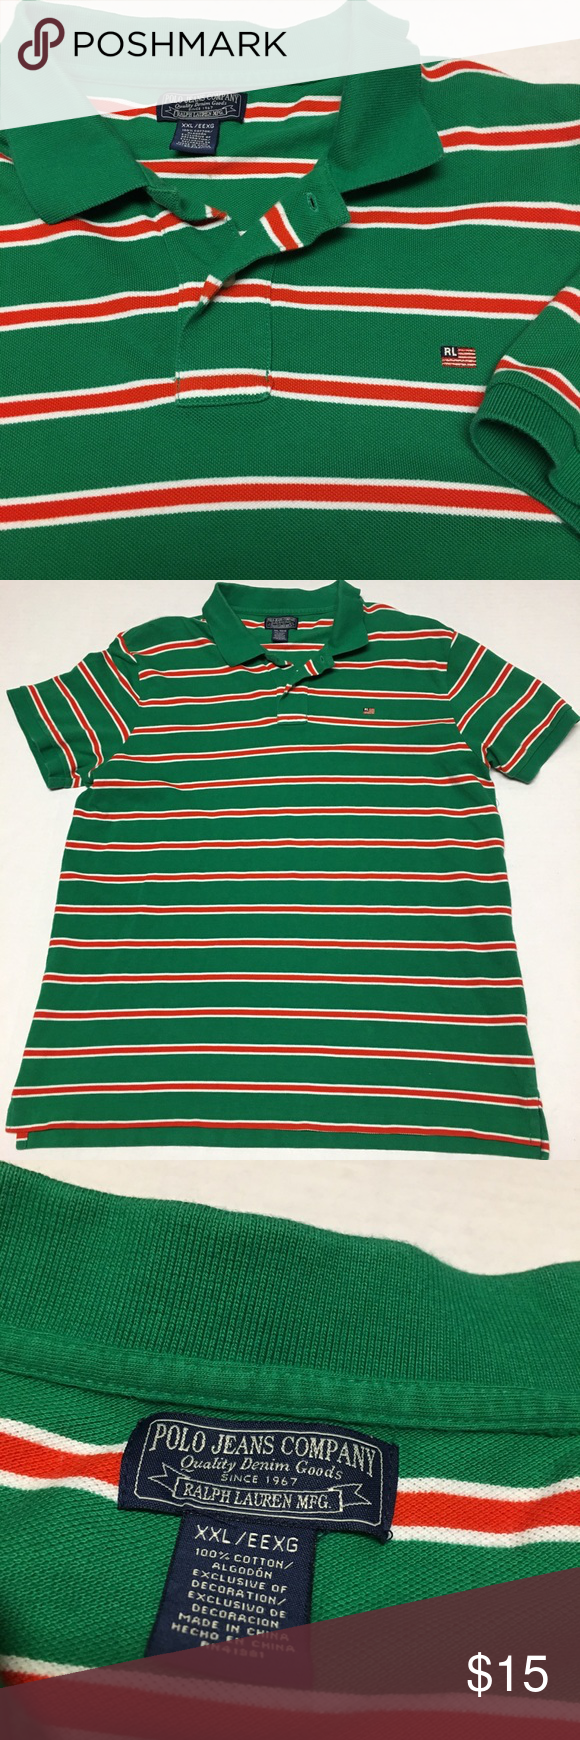 a36cfeab4843 ... italy vintage polo ralph lauren flag striped polo shirt fits like xl  but tagged as xxl